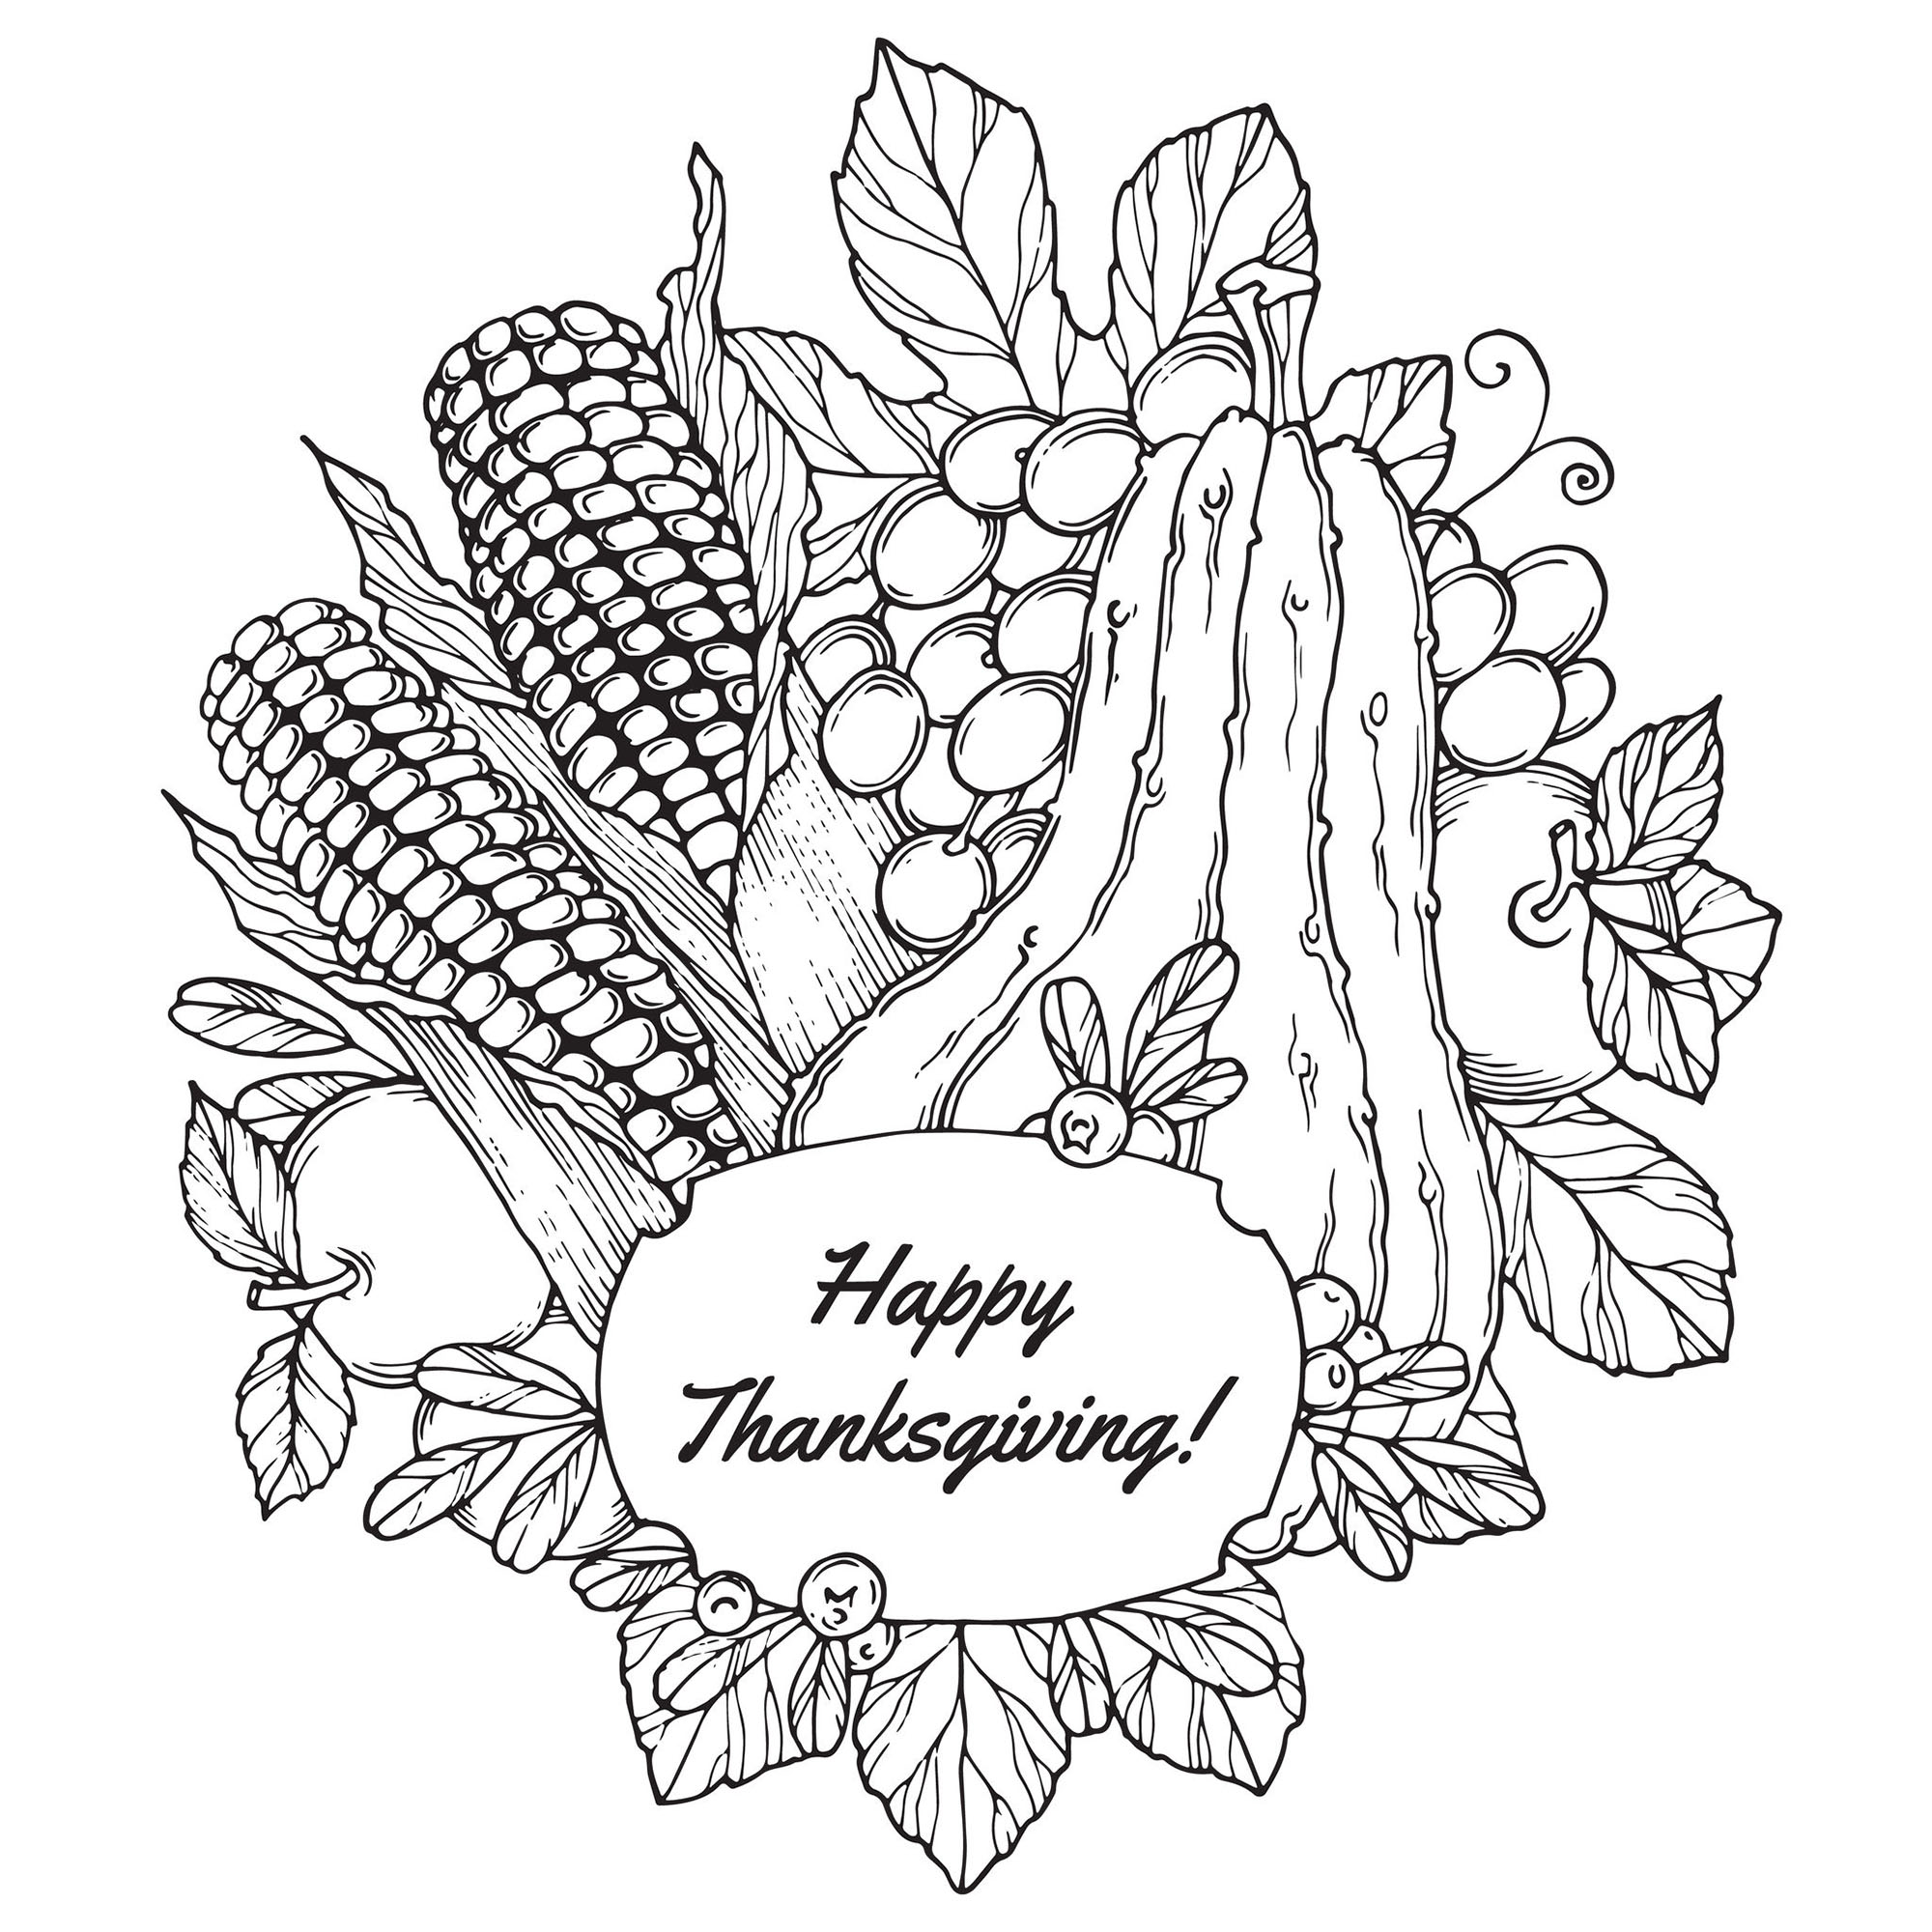 Simple Thanksgiving coloring page to print and color for free